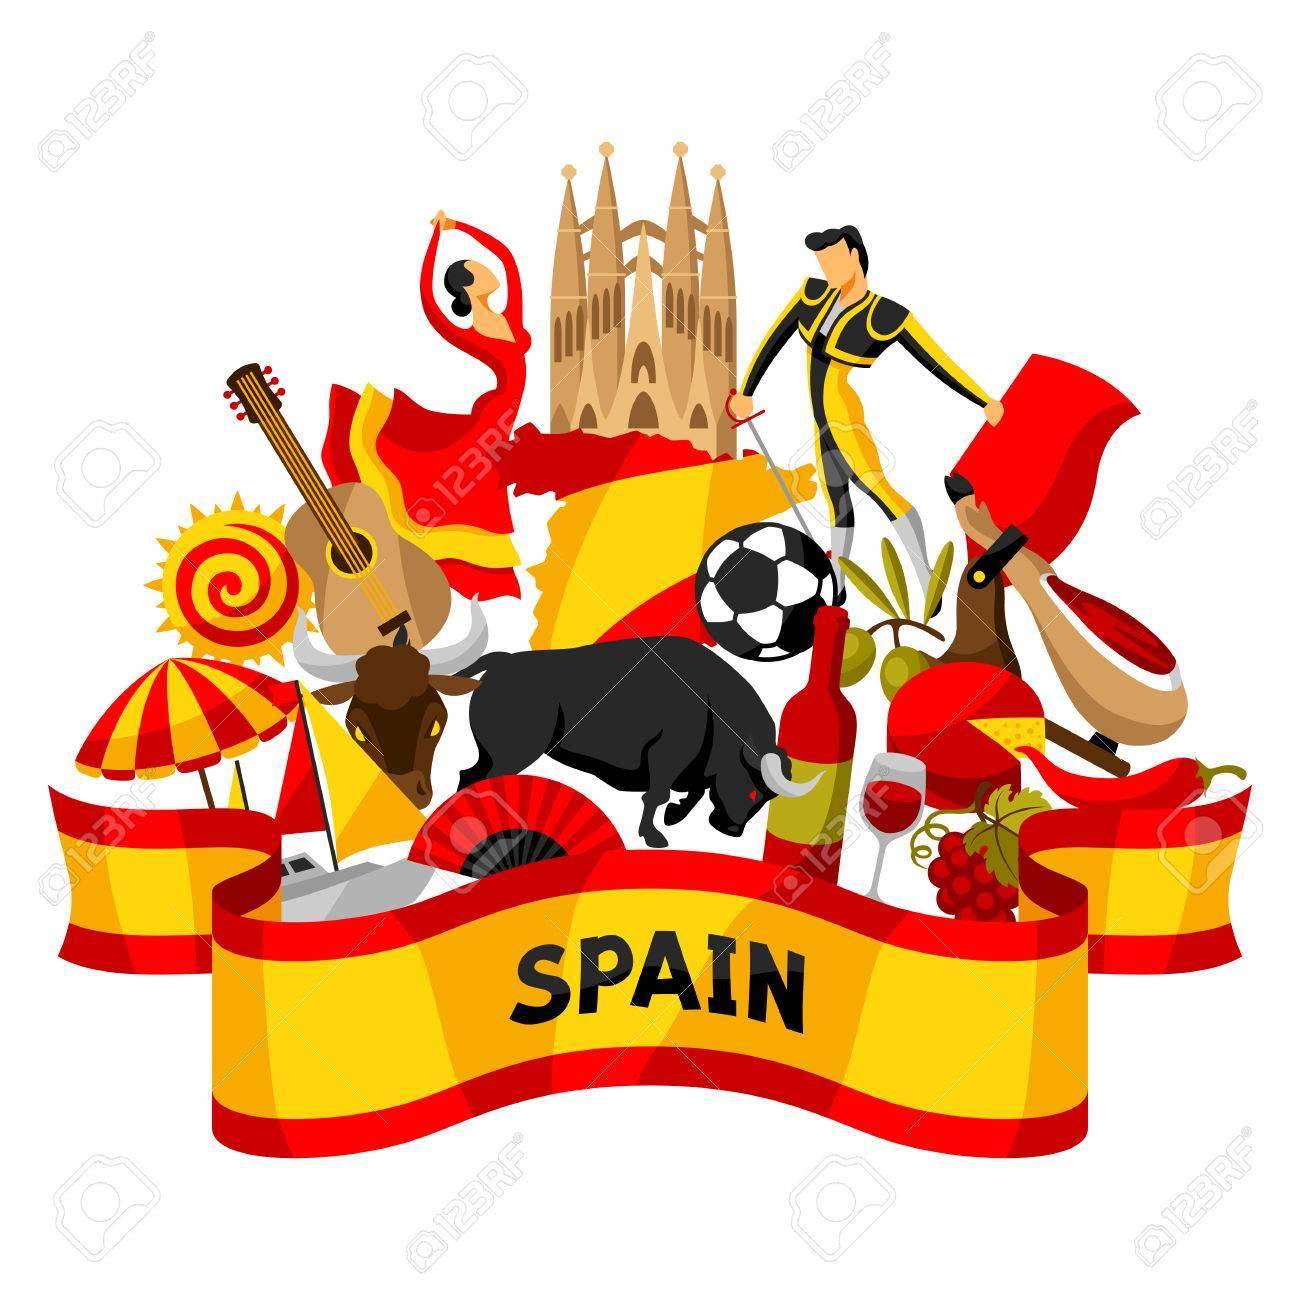 Spain background design spanish traditional symbols and objects spain background design spanish traditional symbols and objects stock vector 77105571 voltagebd Gallery